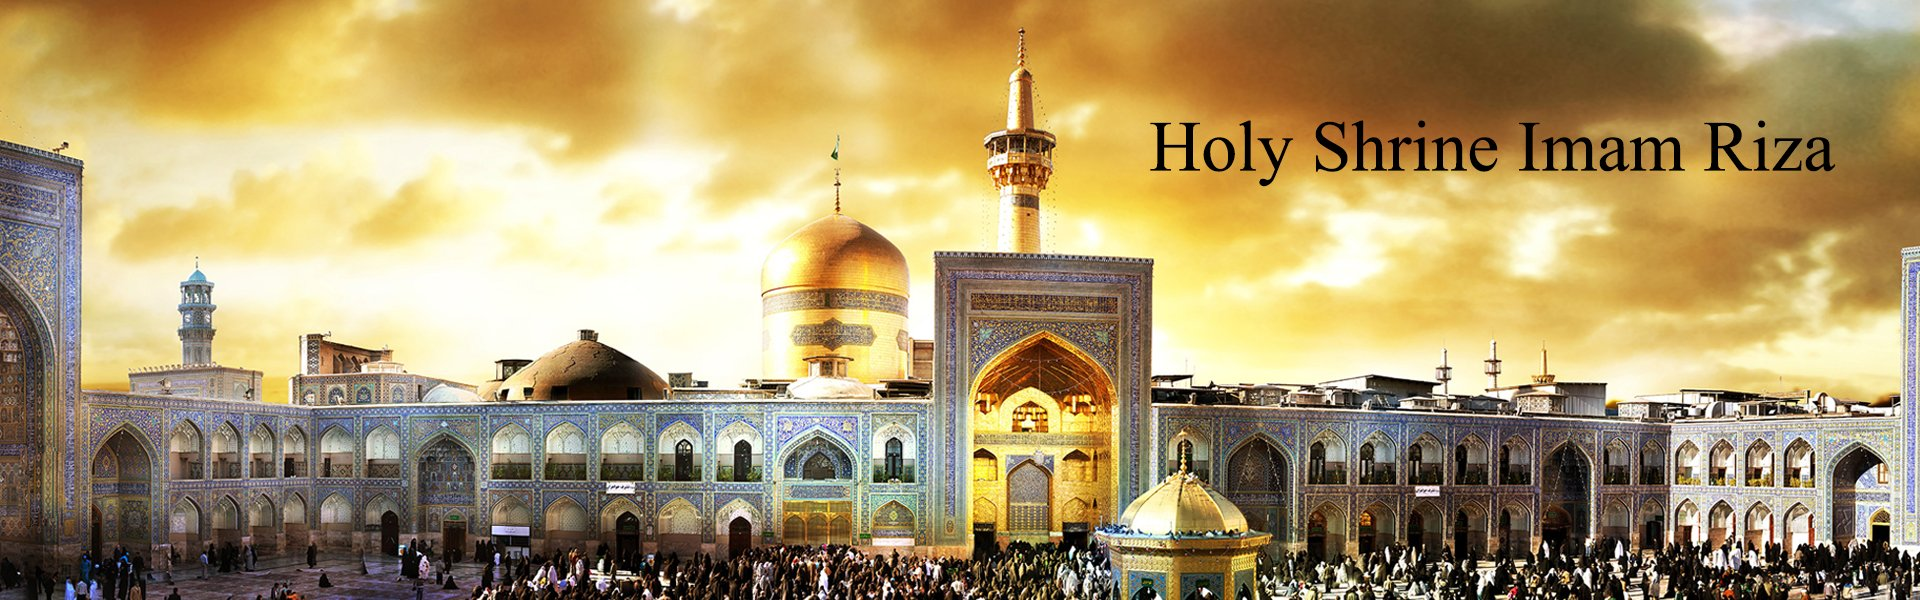 holy-shrine-imam-riza